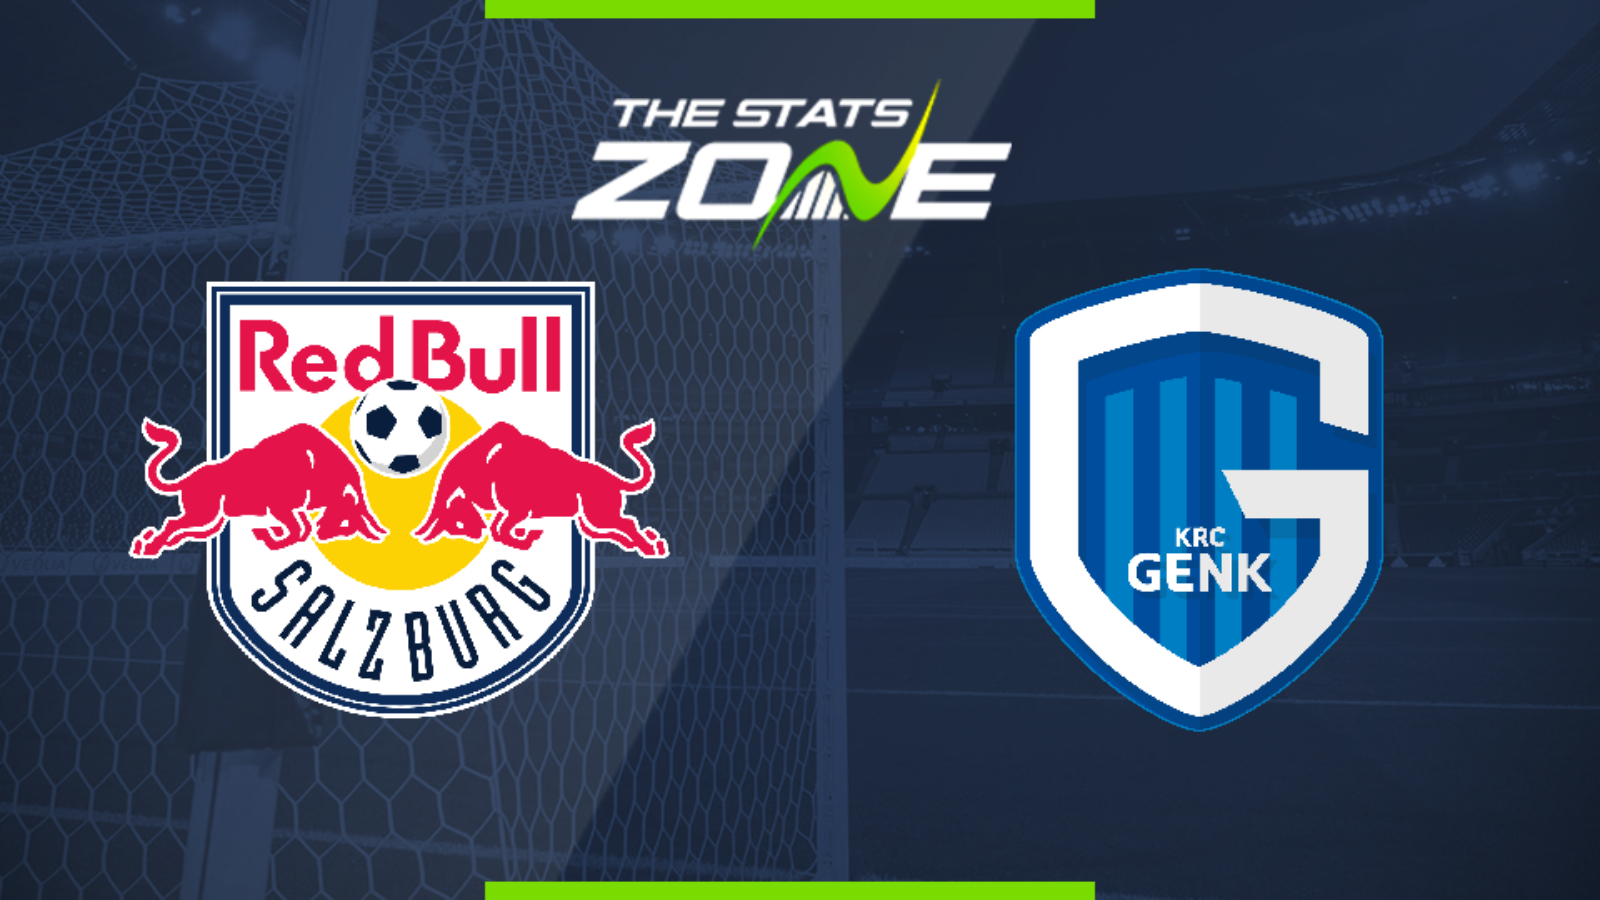 2019 20 Uefa Champions League Salzburg Vs Genk Preview